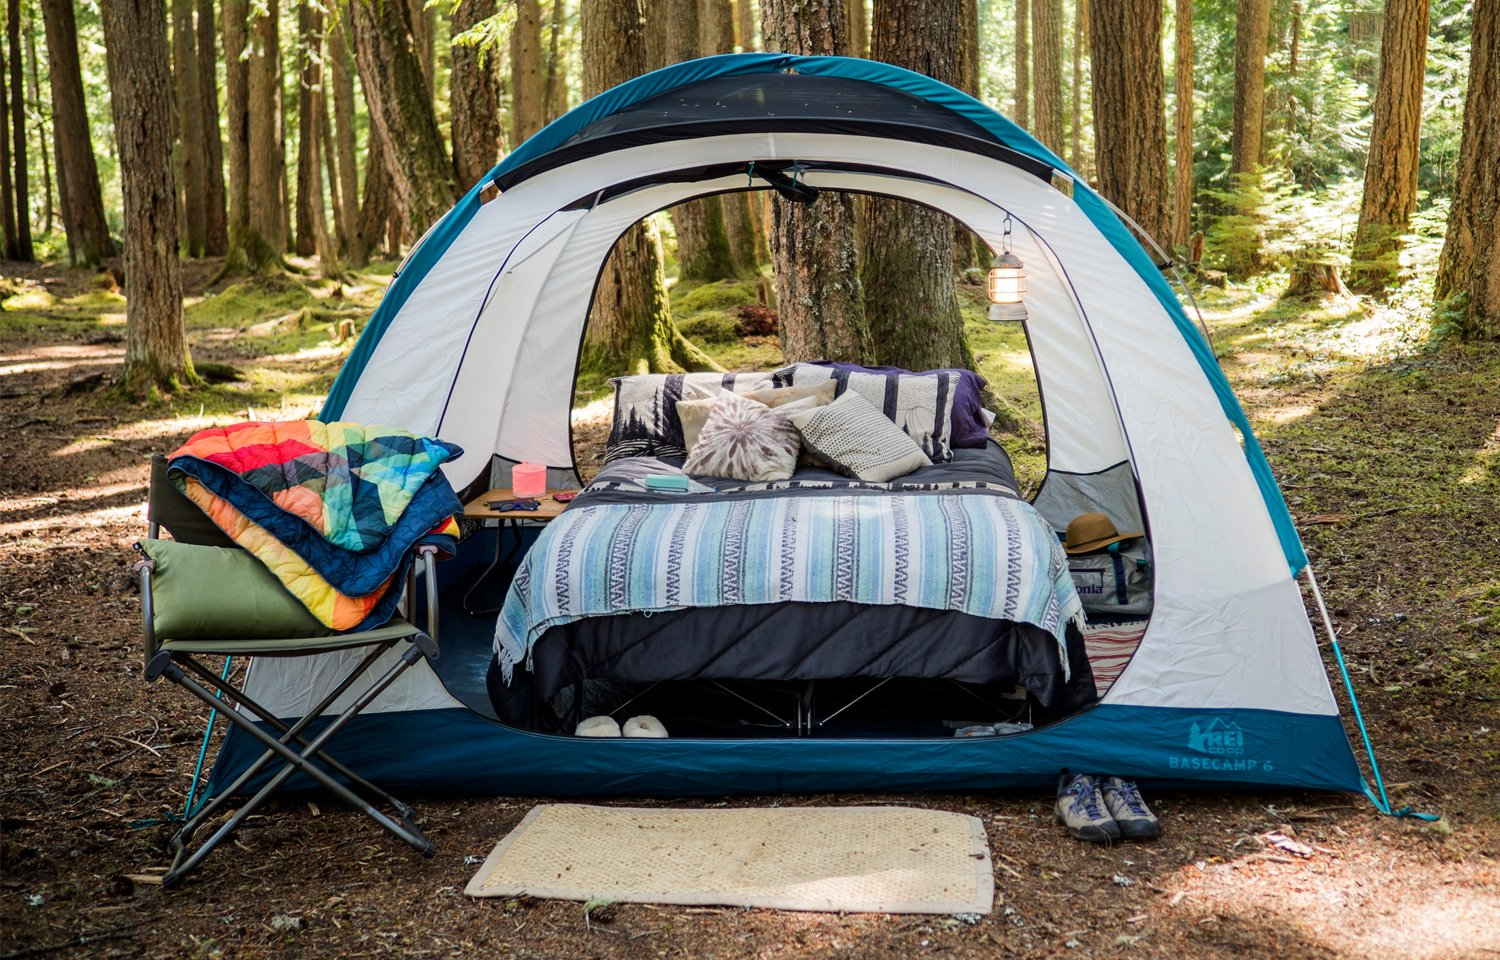 DIY Tent Glamping On A Budget